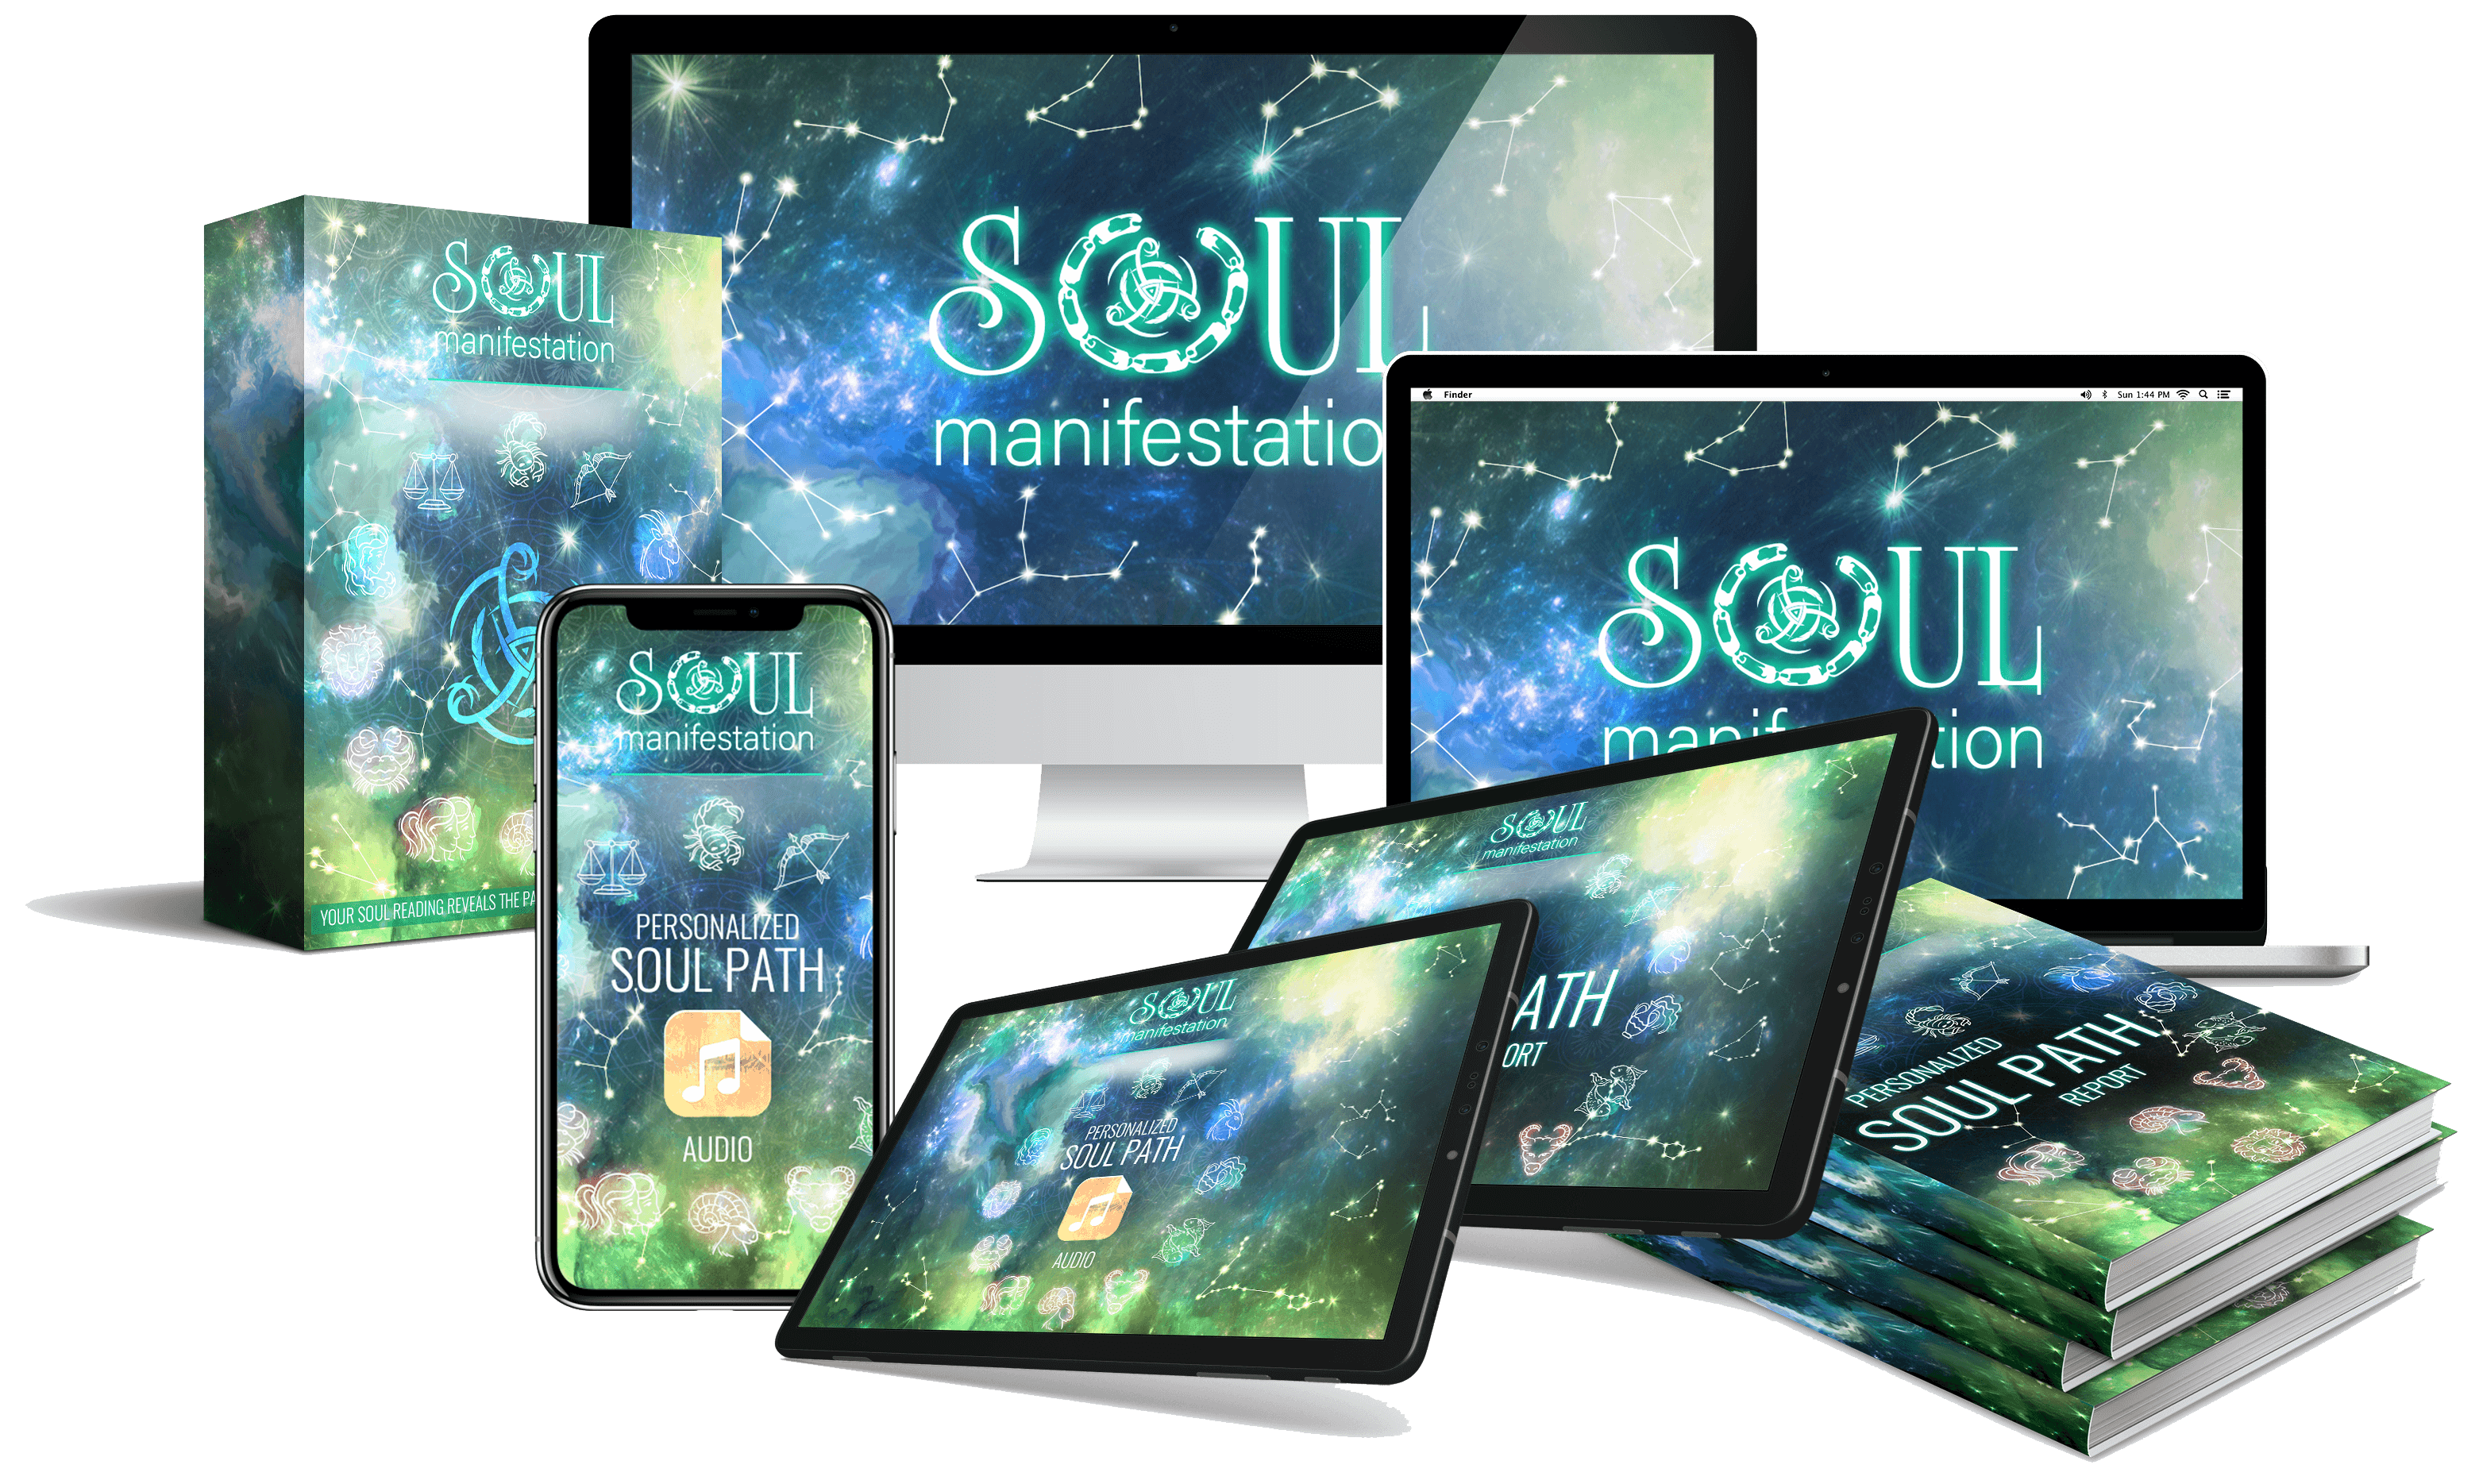 Soul Manifestation 2.0 is a program